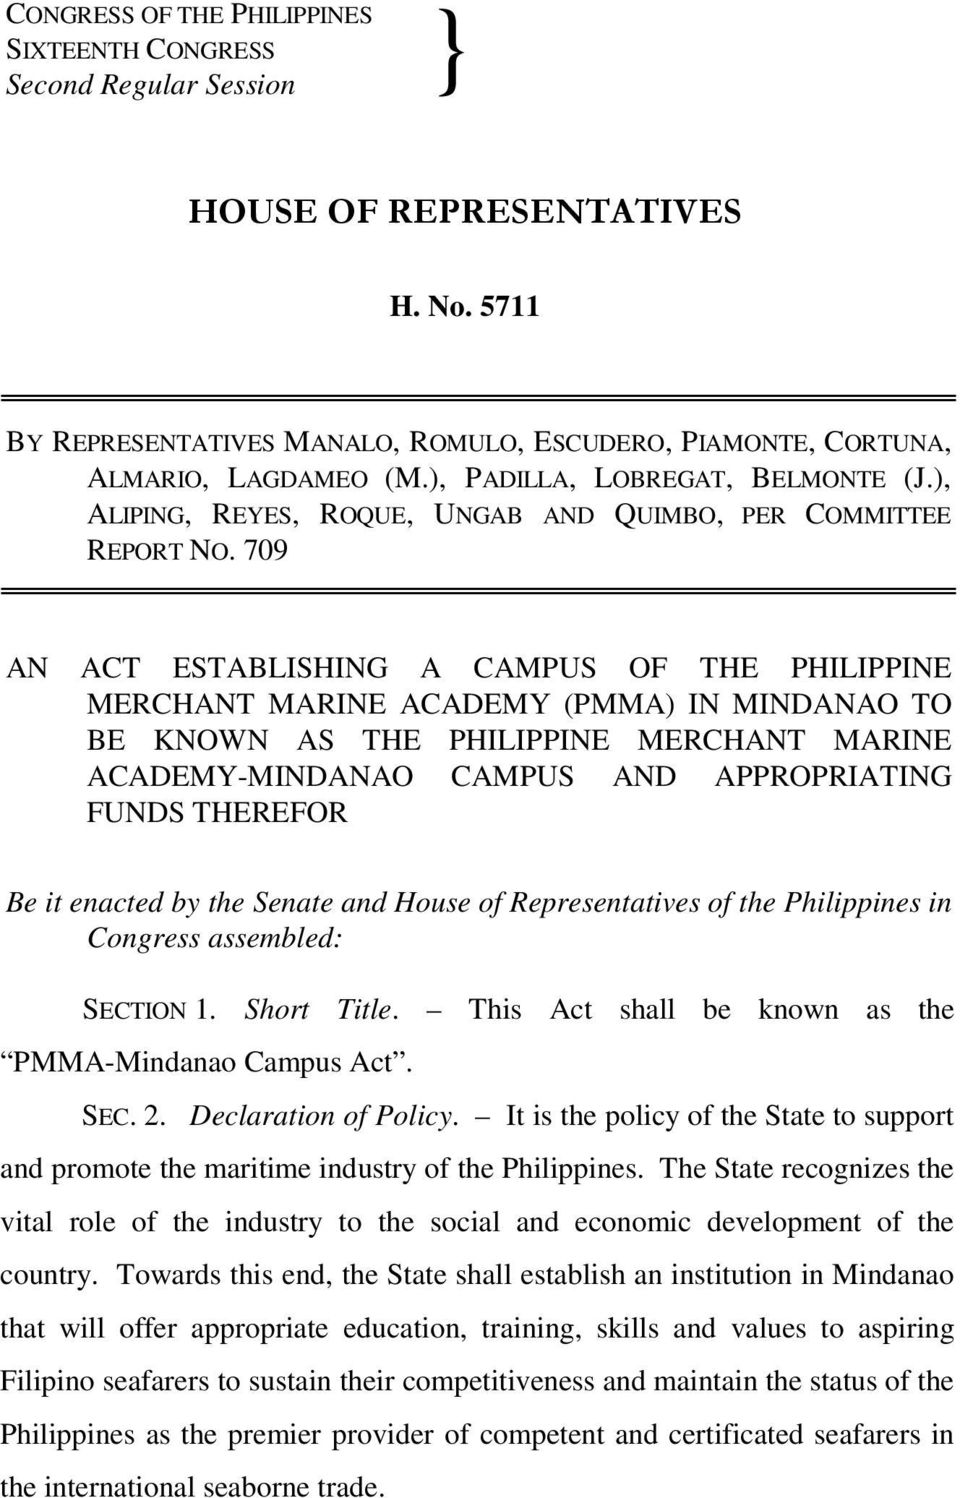 709 AN ACT ESTABLISHING A CAMPUS OF THE PHILIPPINE MERCHANT MARINE ACADEMY (PMMA) IN MINDANAO TO BE KNOWN AS THE PHILIPPINE MERCHANT MARINE ACADEMY-MINDANAO CAMPUS AND APPROPRIATING FUNDS THEREFOR Be